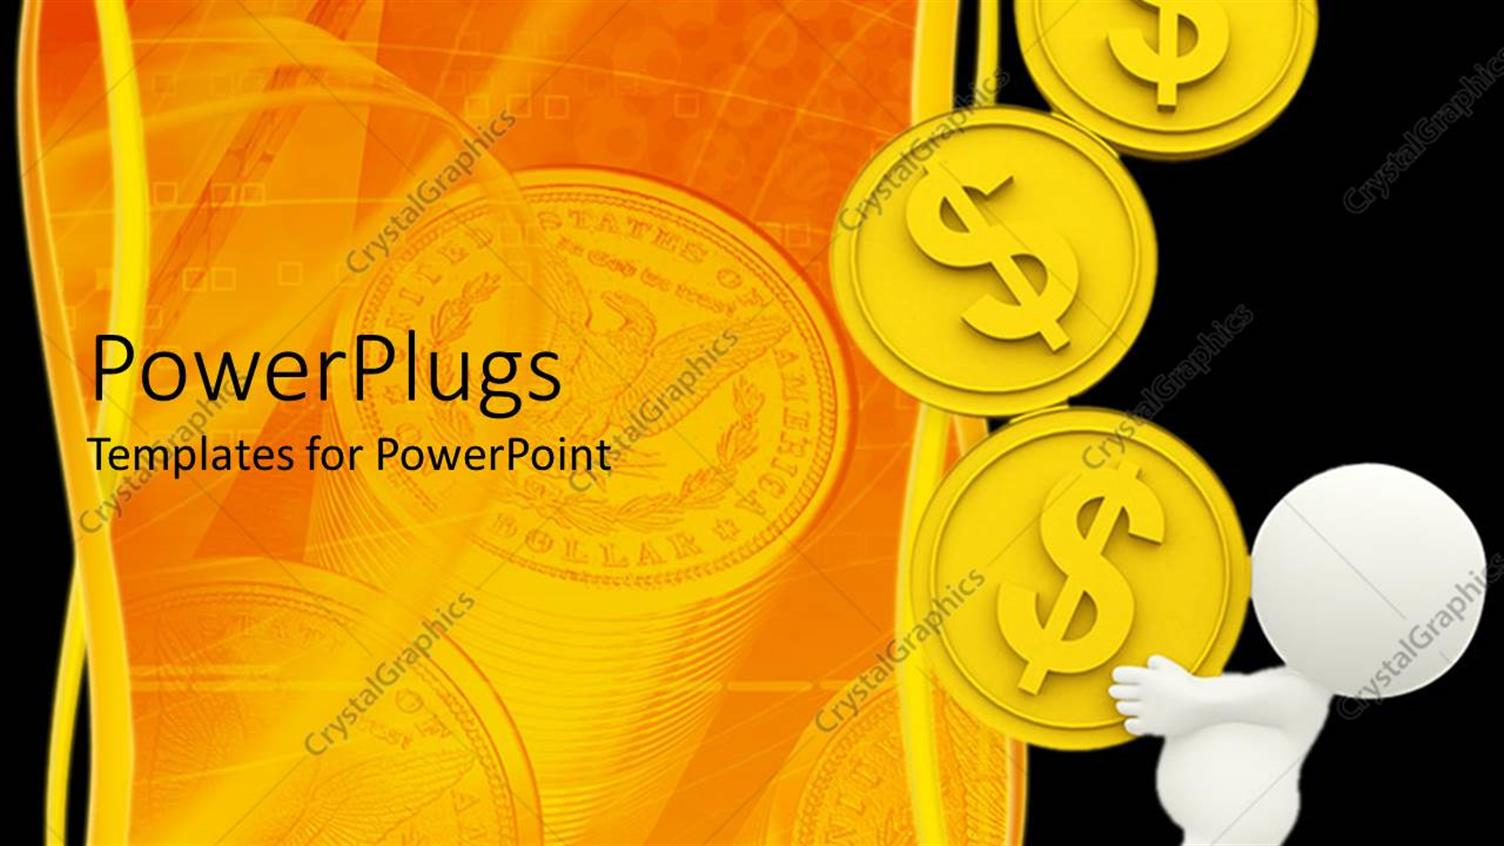 PowerPoint Template Displaying White Man Carrying Golden Coins with Dollar Sign